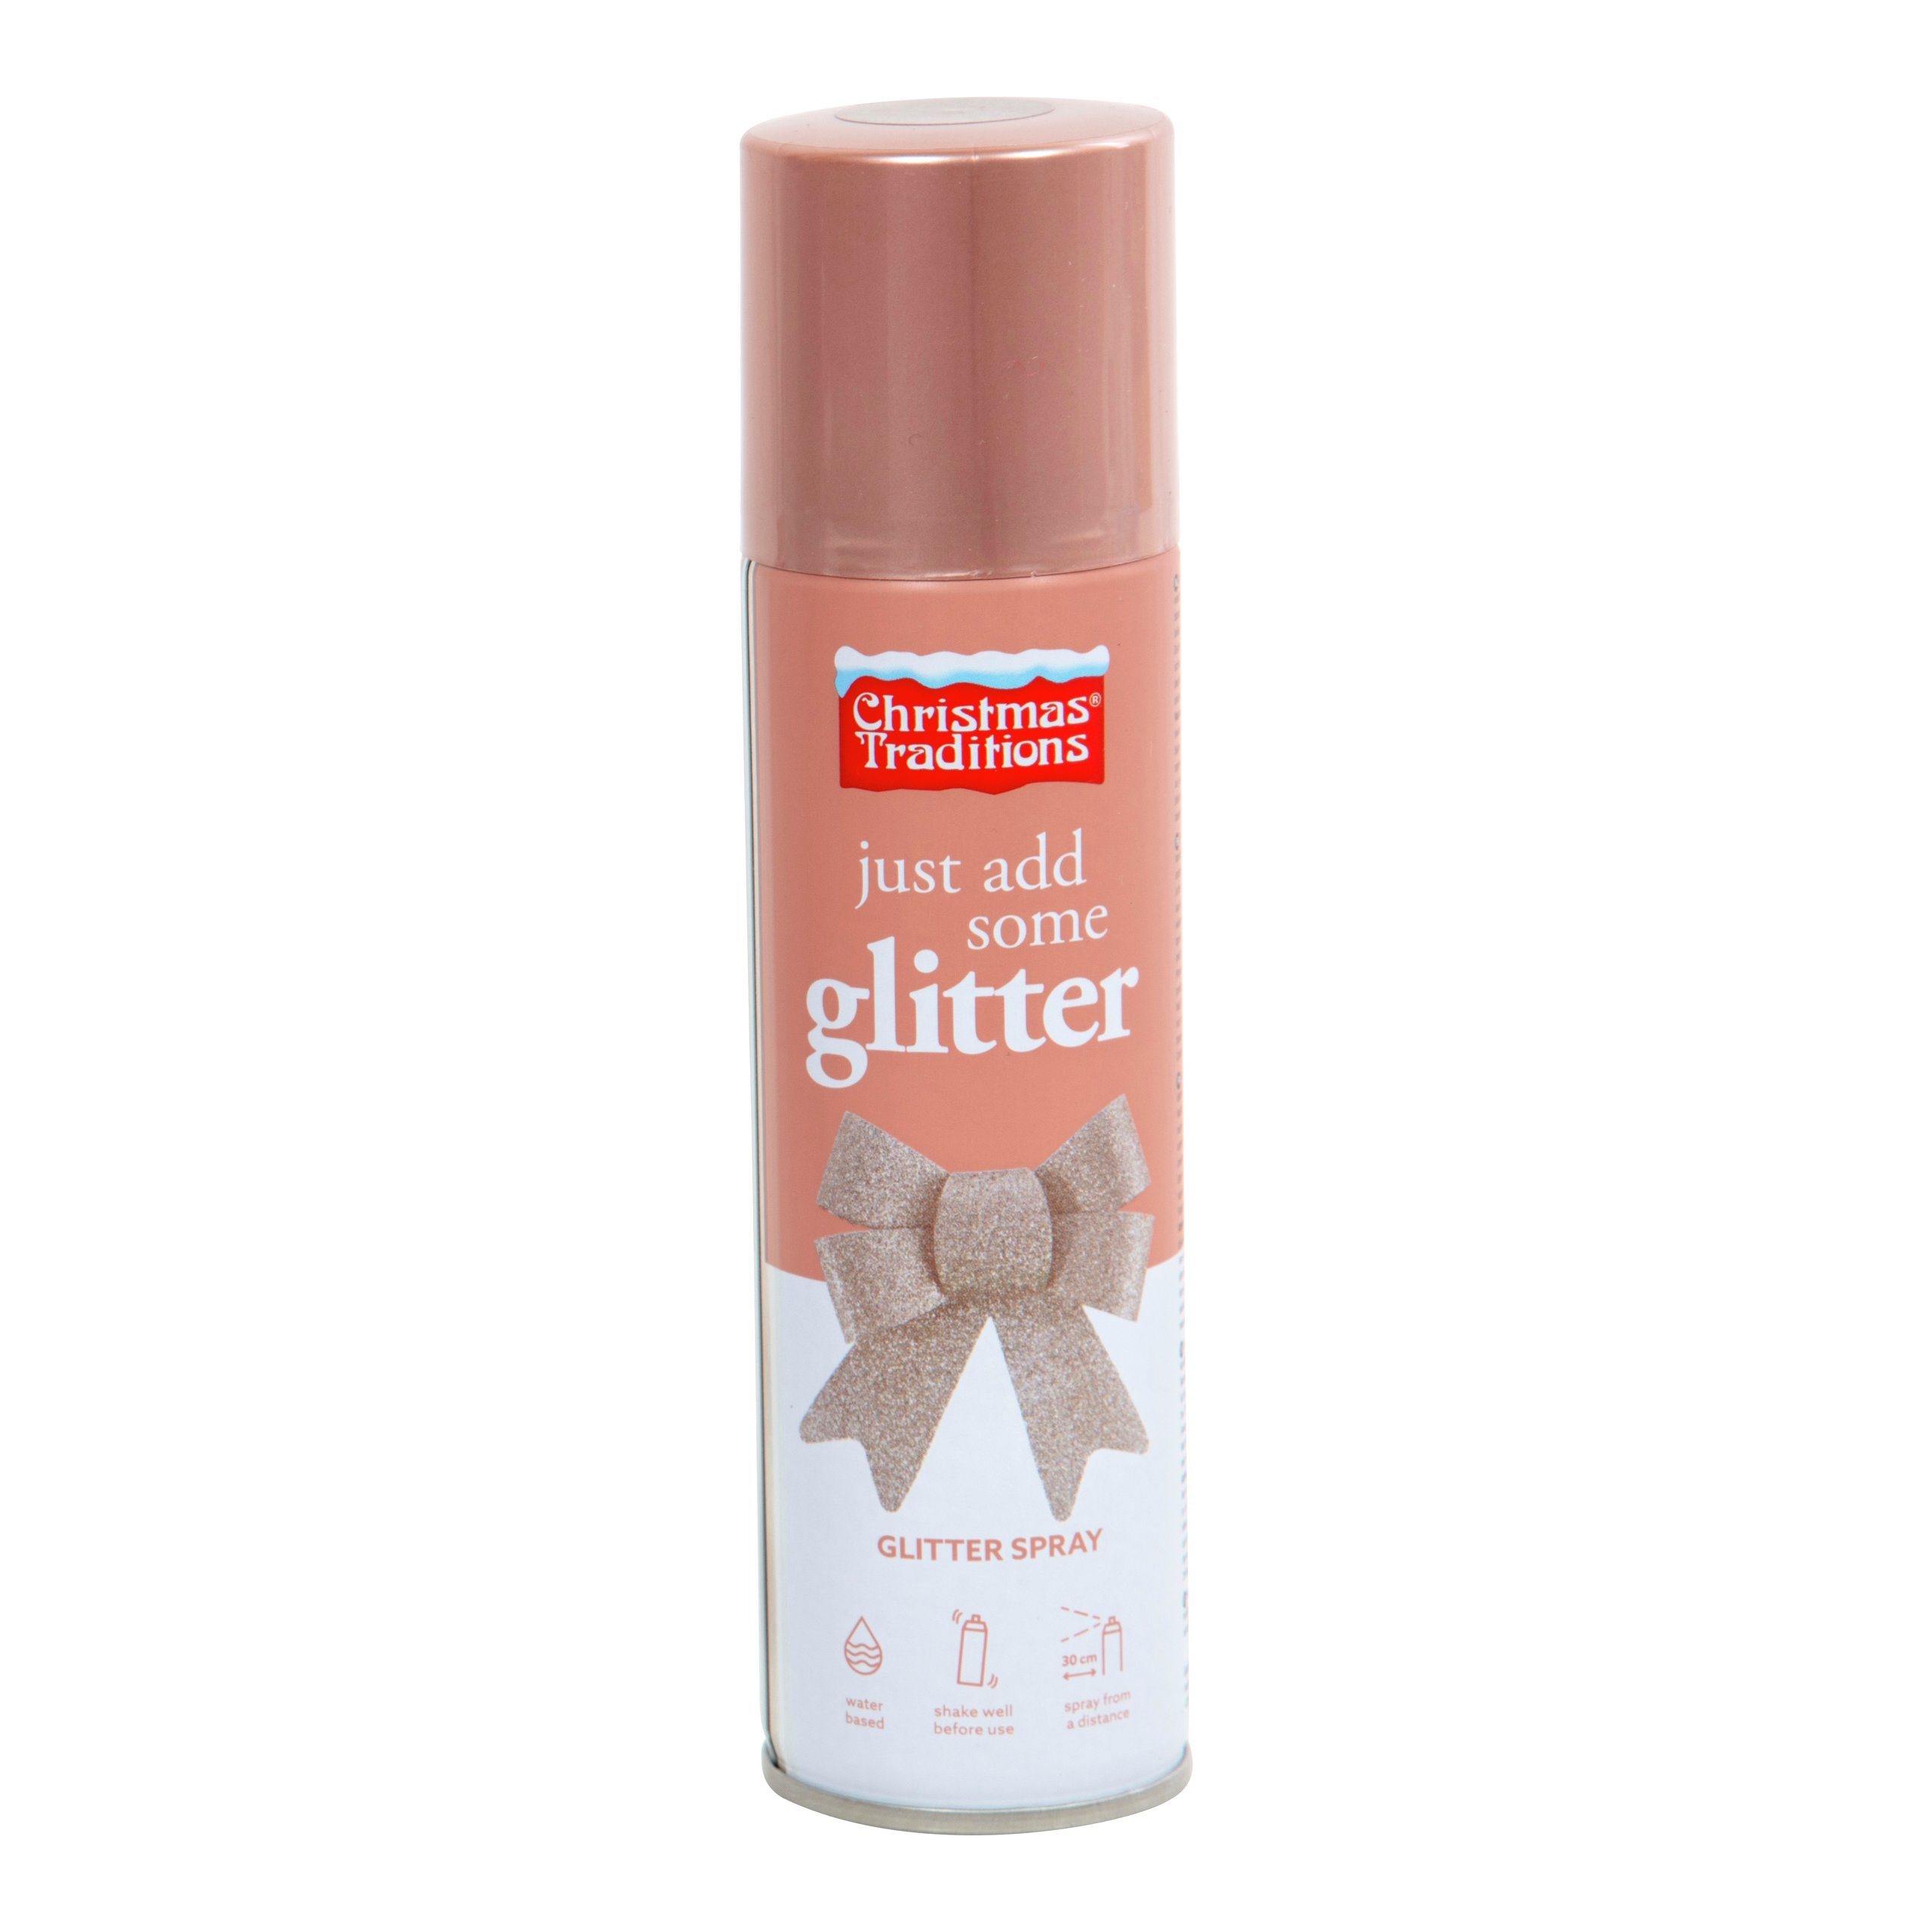 DEKOR GLITTER ROSEGULLSPRAY 100ML-103443